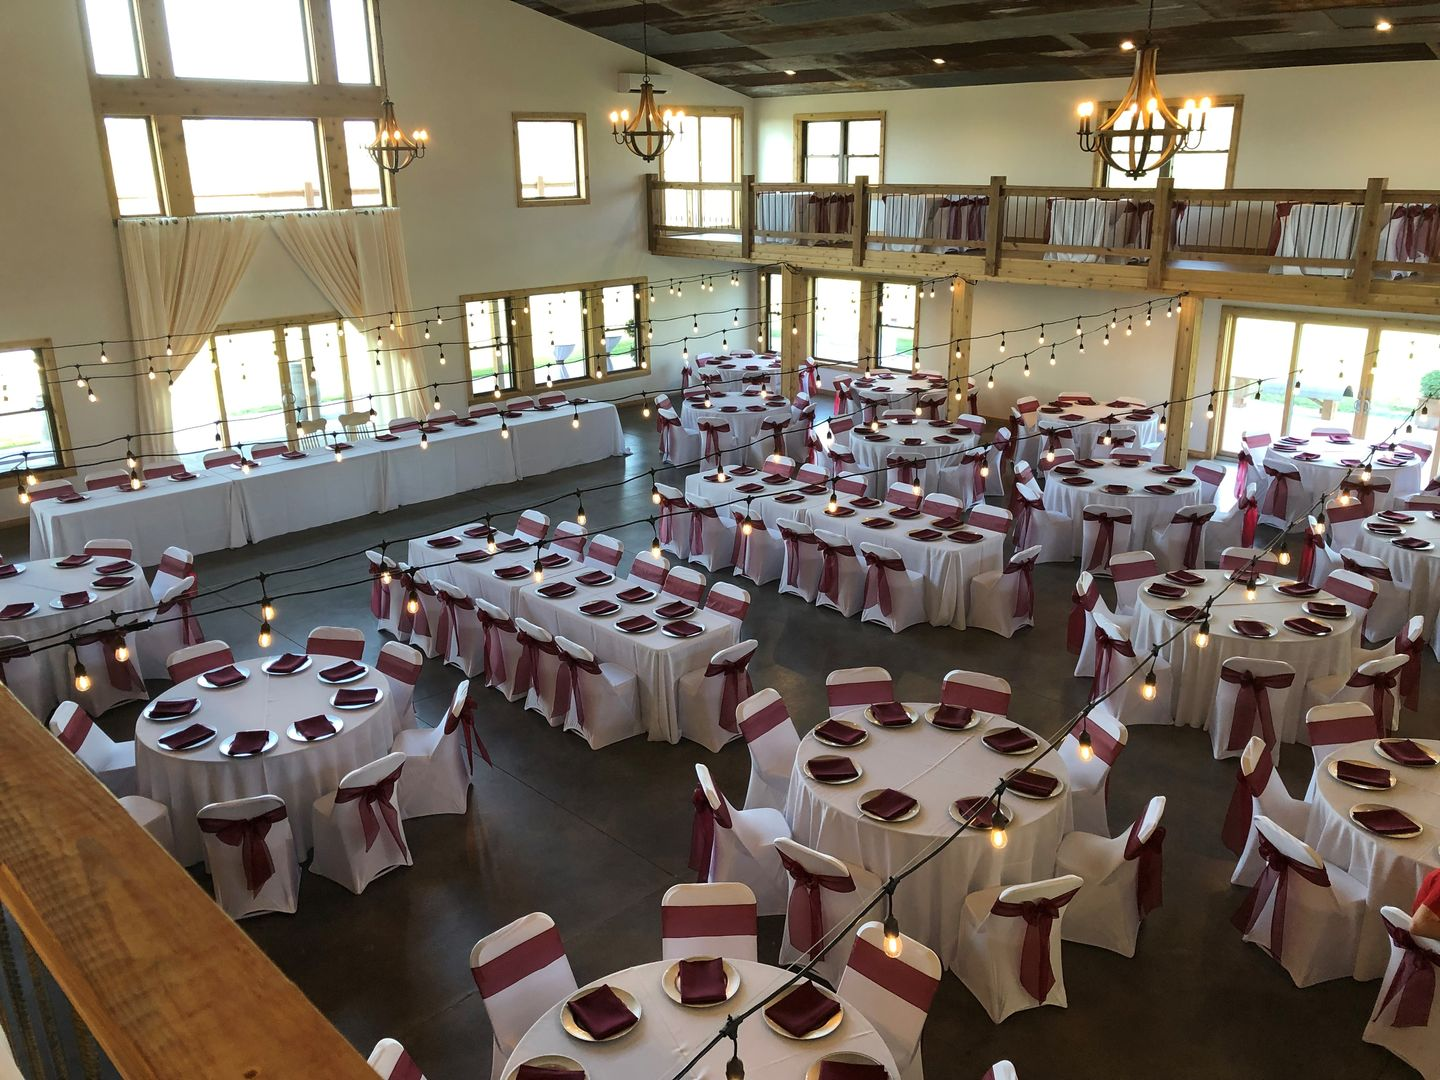 Advantages of Renting Tablecloths and Chair Covers